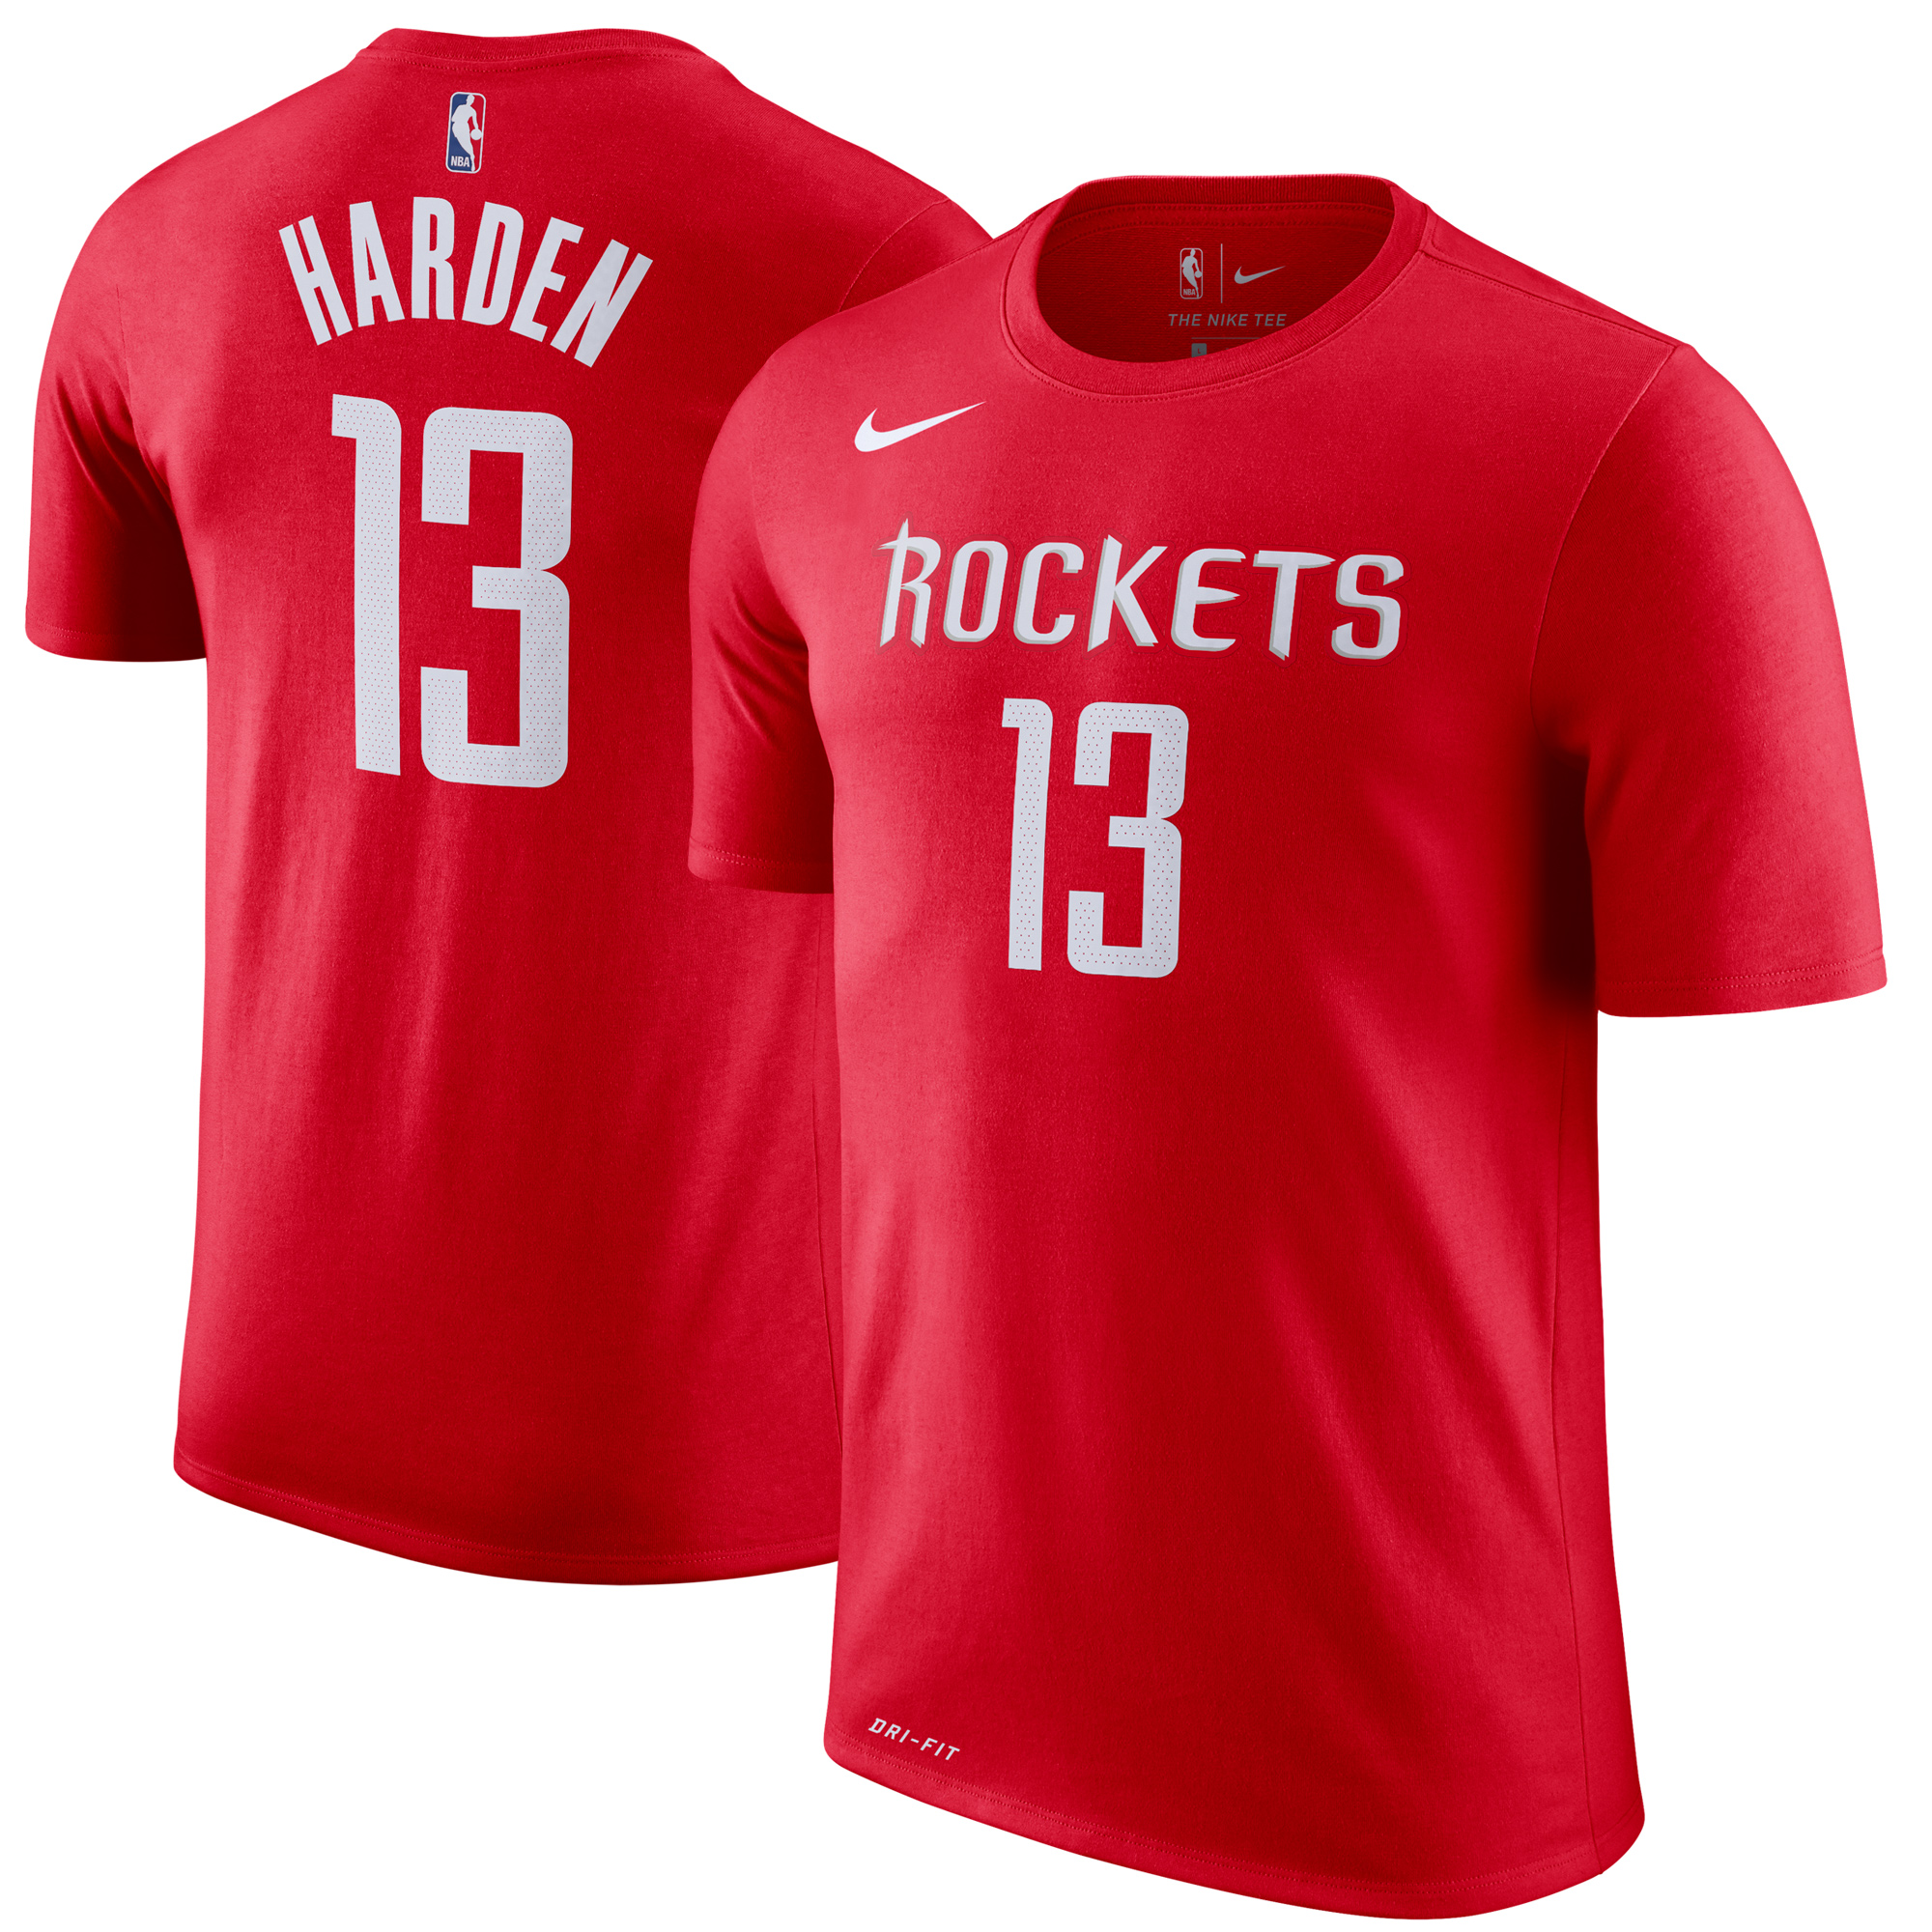 James Harden Houston Rockets Nike Youth Name & Number T-Shirt - Red